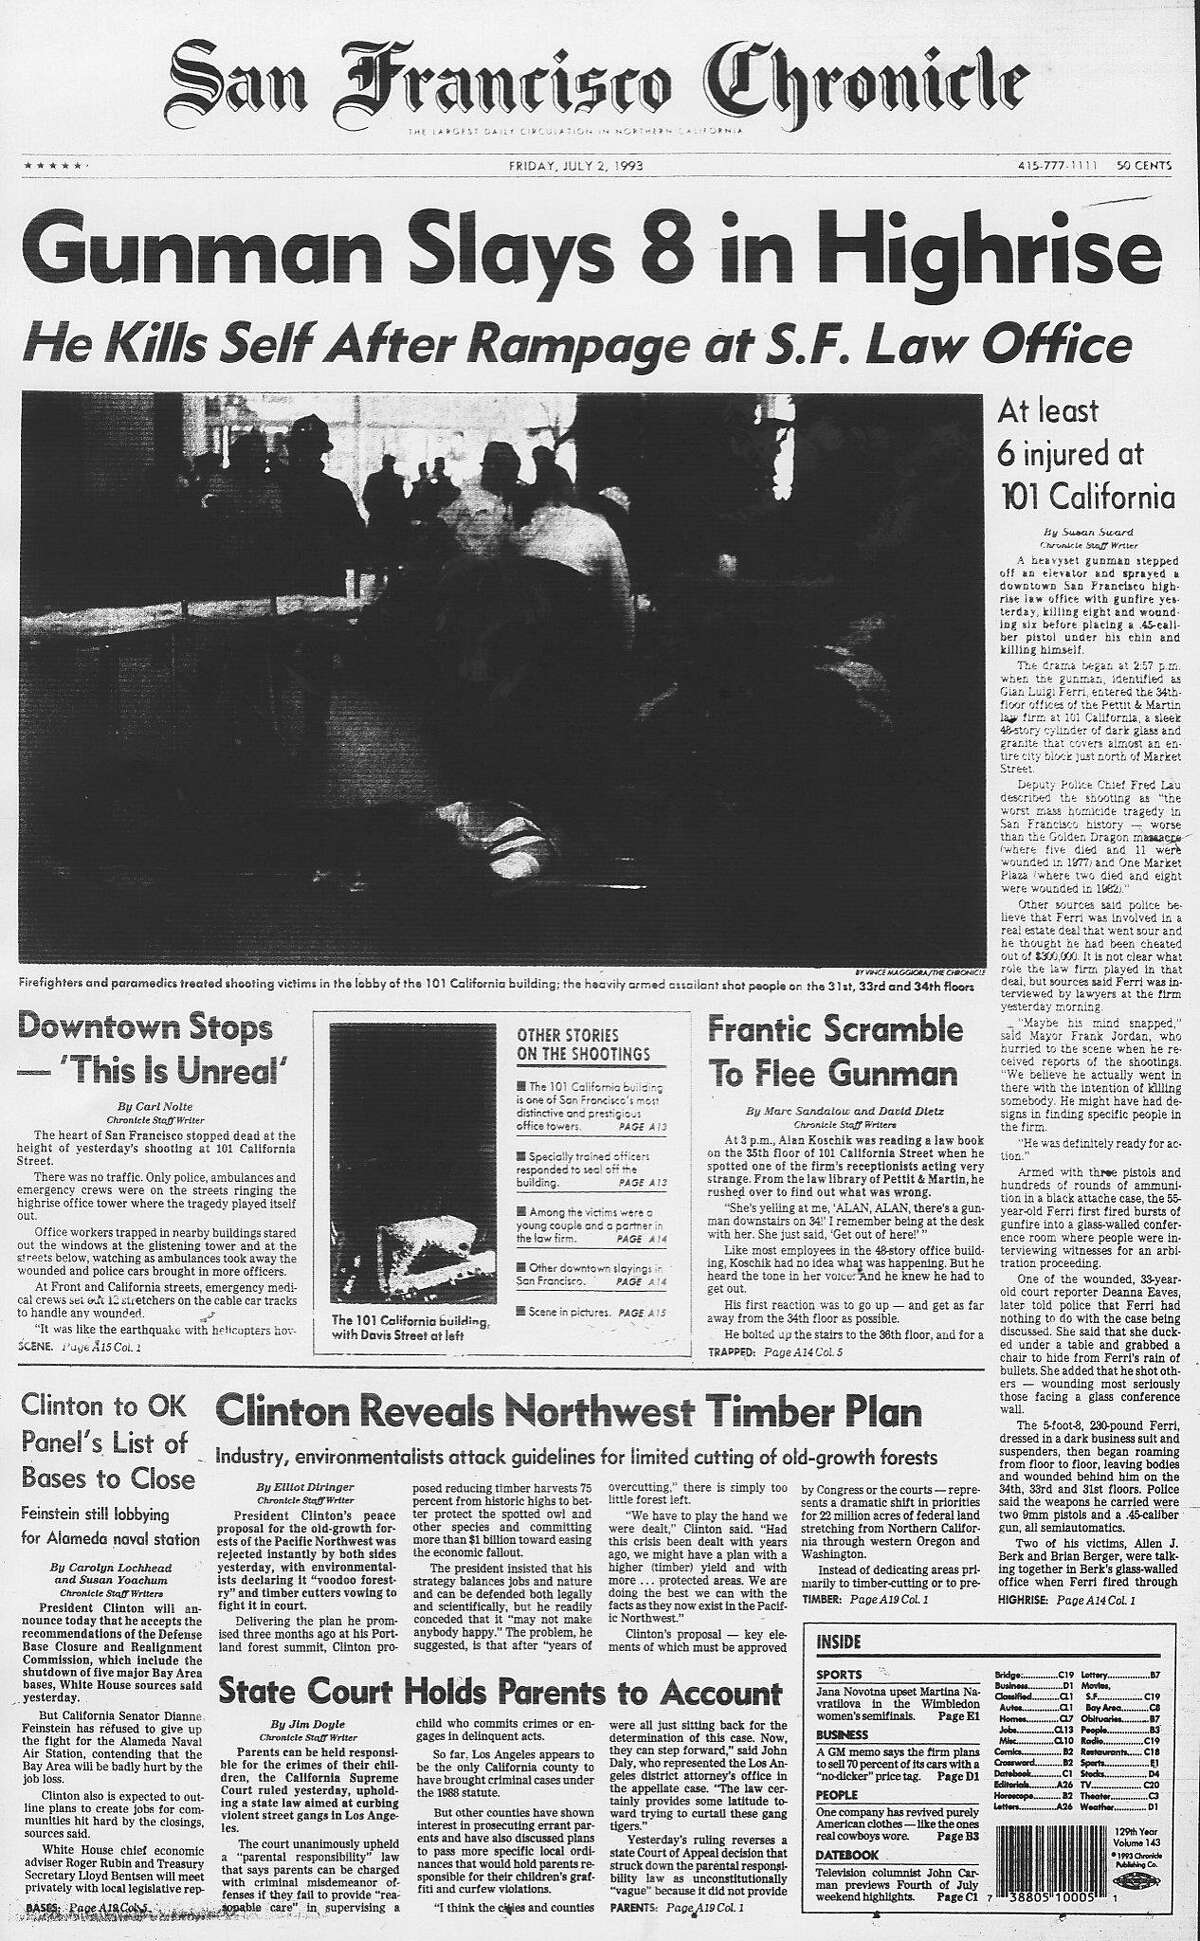 Historic Chronicle Front Page July 02, 1993 front page Gunman kill 8 in 101 California highrise Chron365, Chroncover